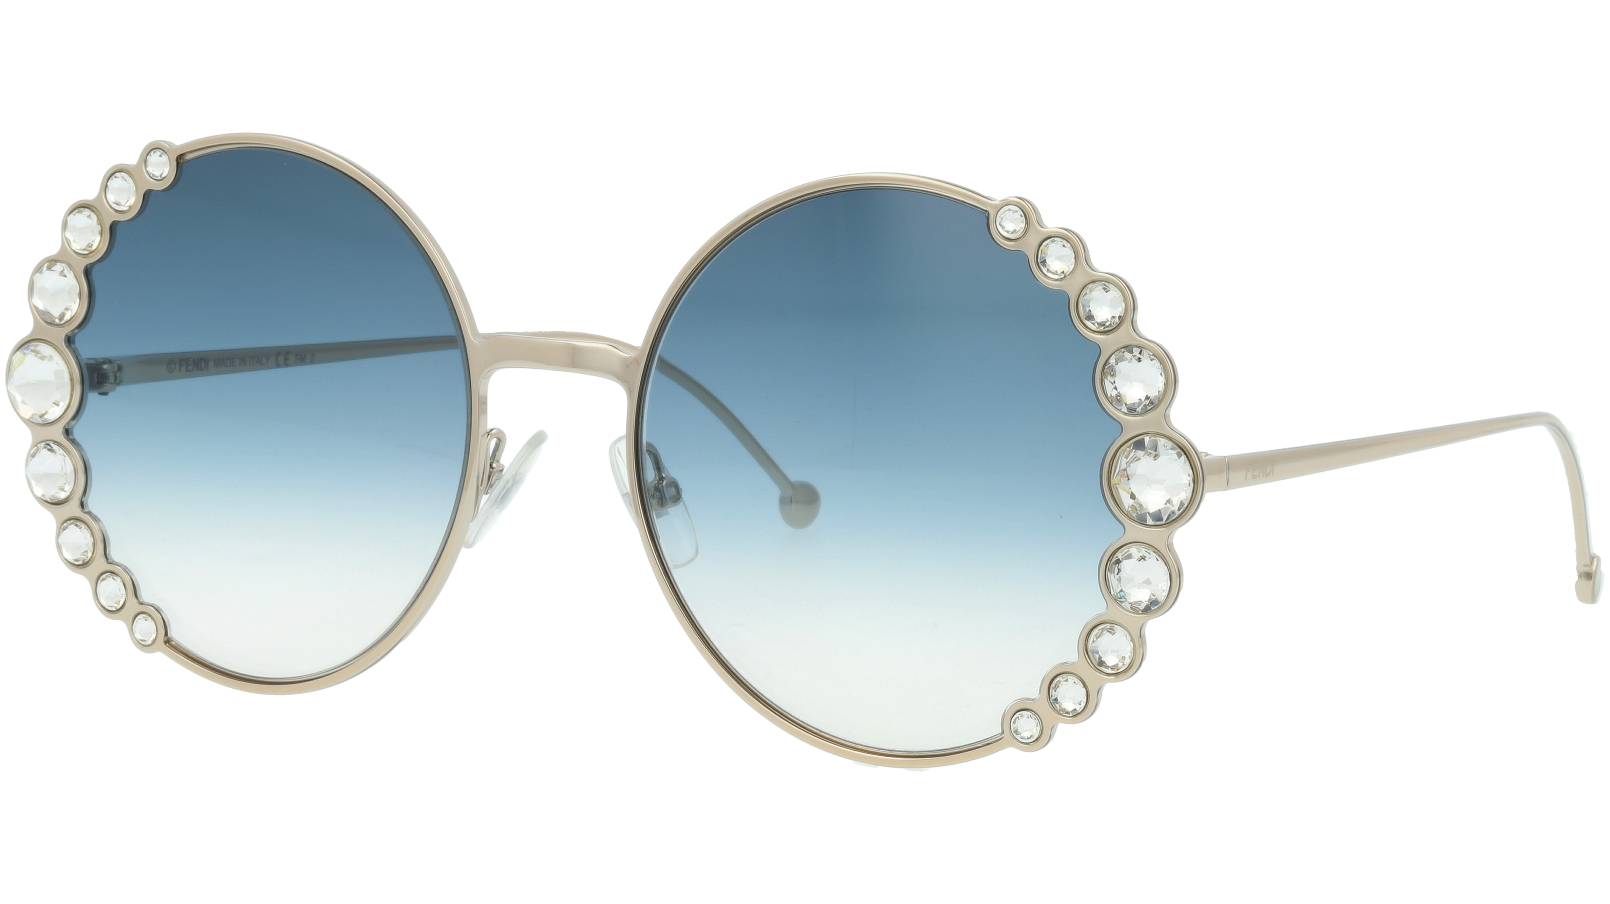 FENDI FF0324/S 3YG08 58 Light Gold Diamond Sunglasses